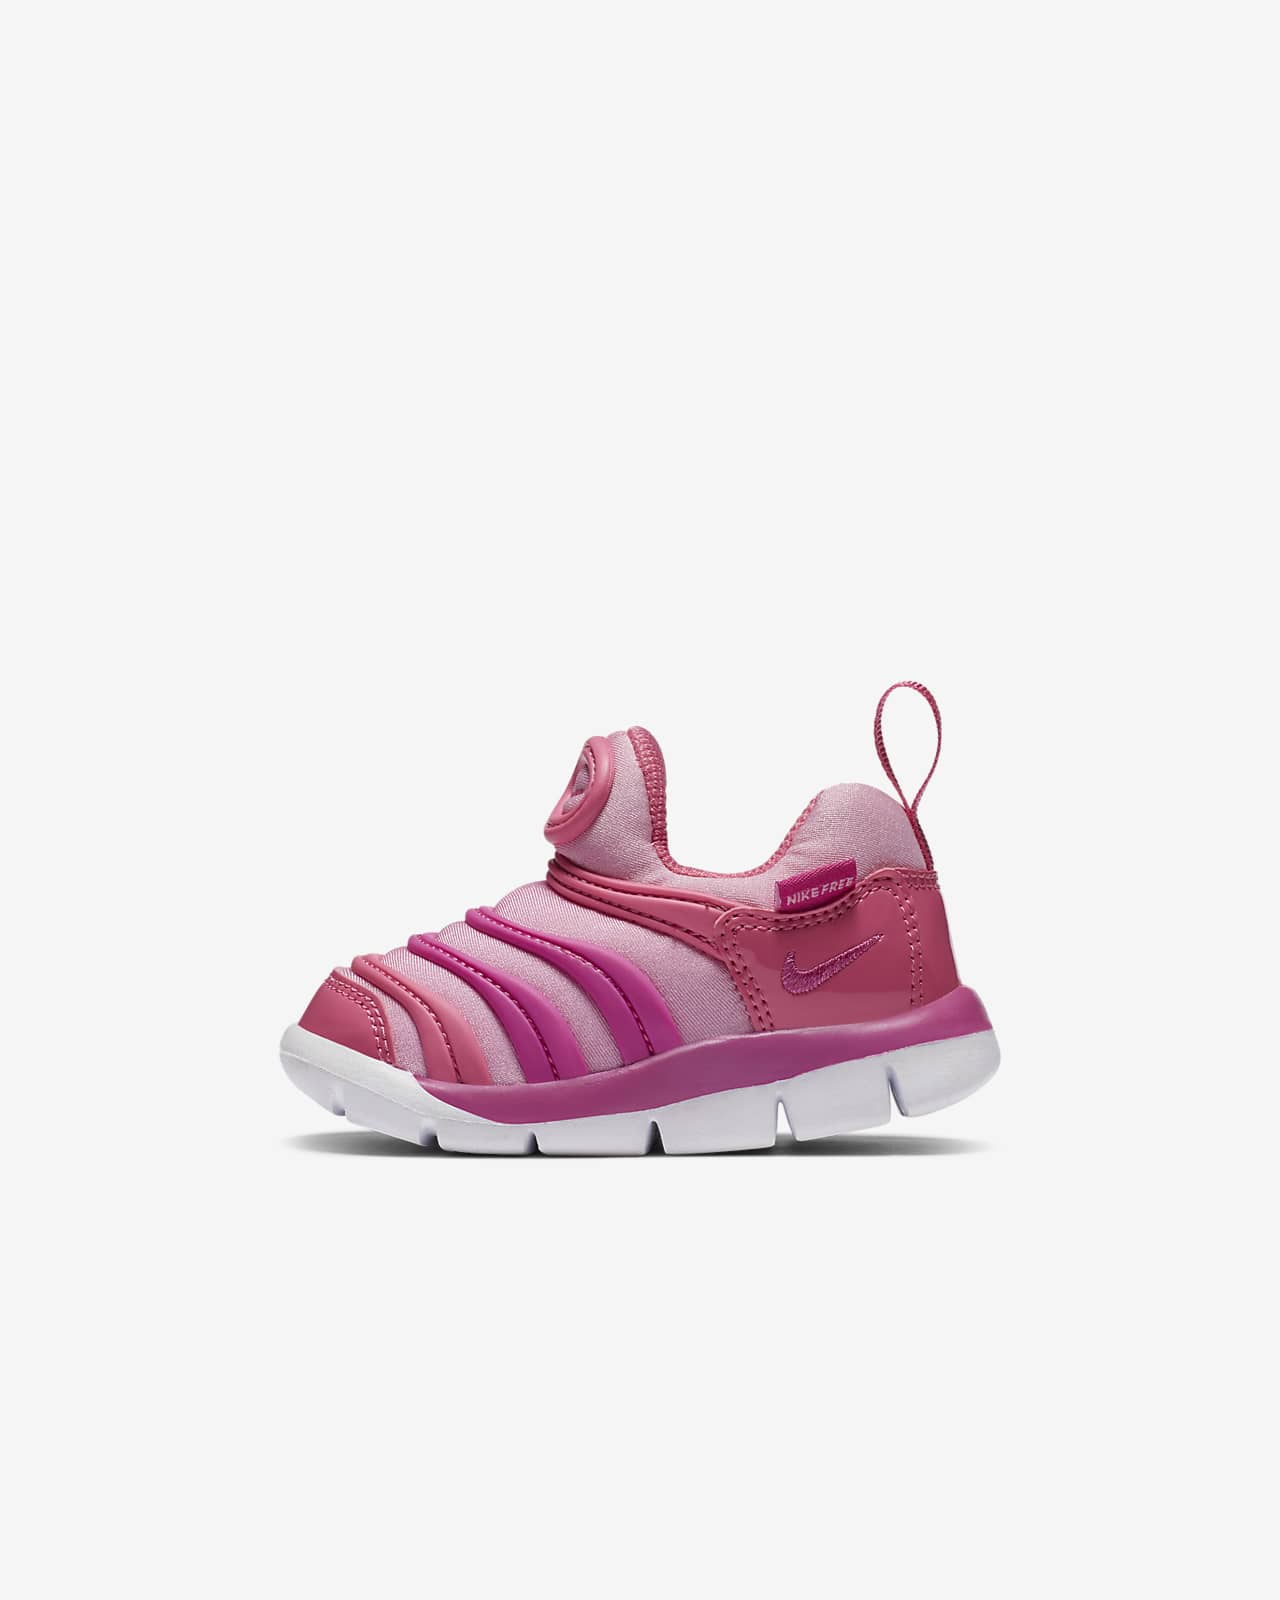 Nike Dynamo Free Baby and Toddler Shoe